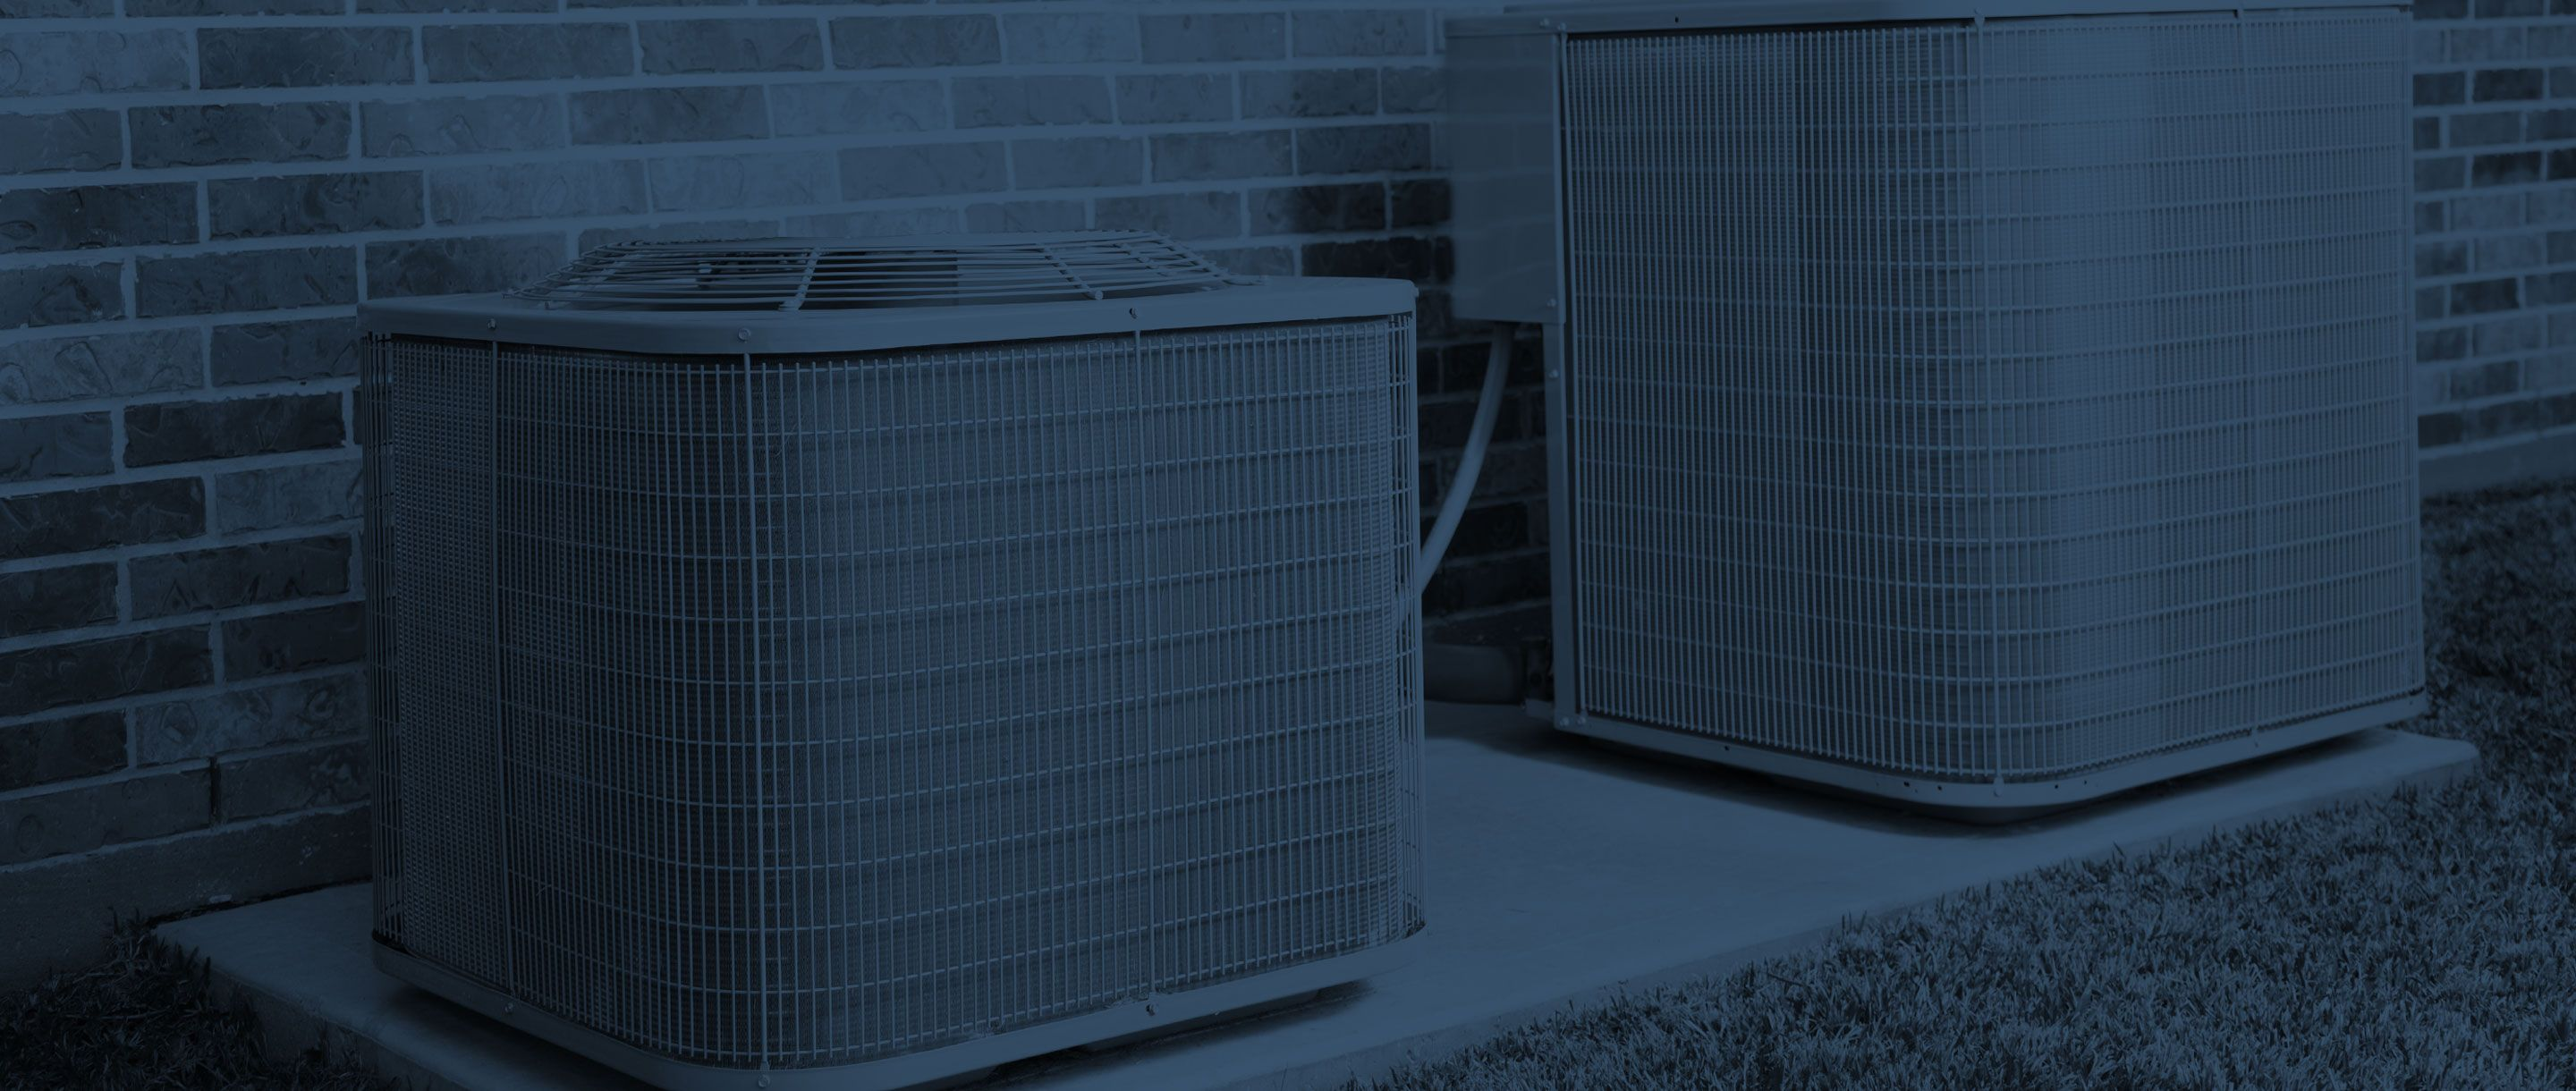 Central Air Conditioning Buying Guide (With images